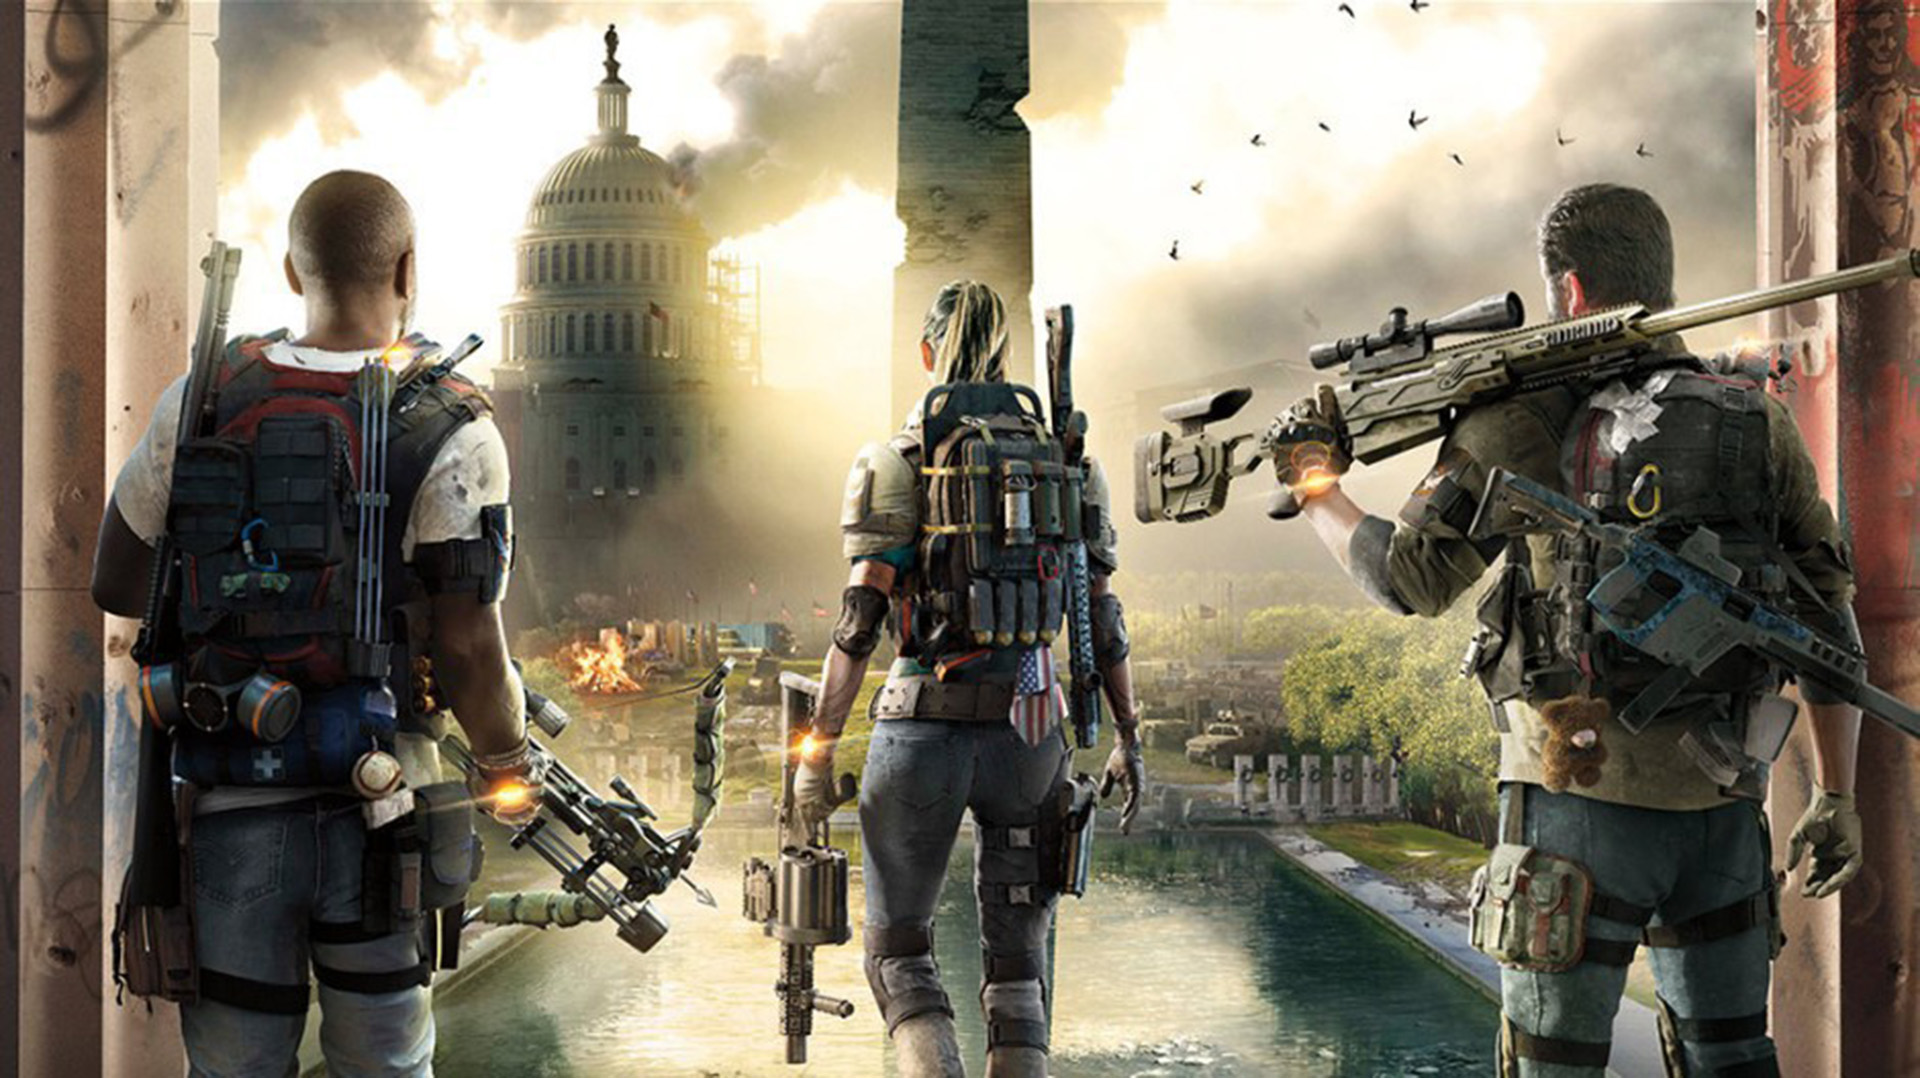 Today on Impulse, we give our first impressions from The Division 2 open beta! screenshot